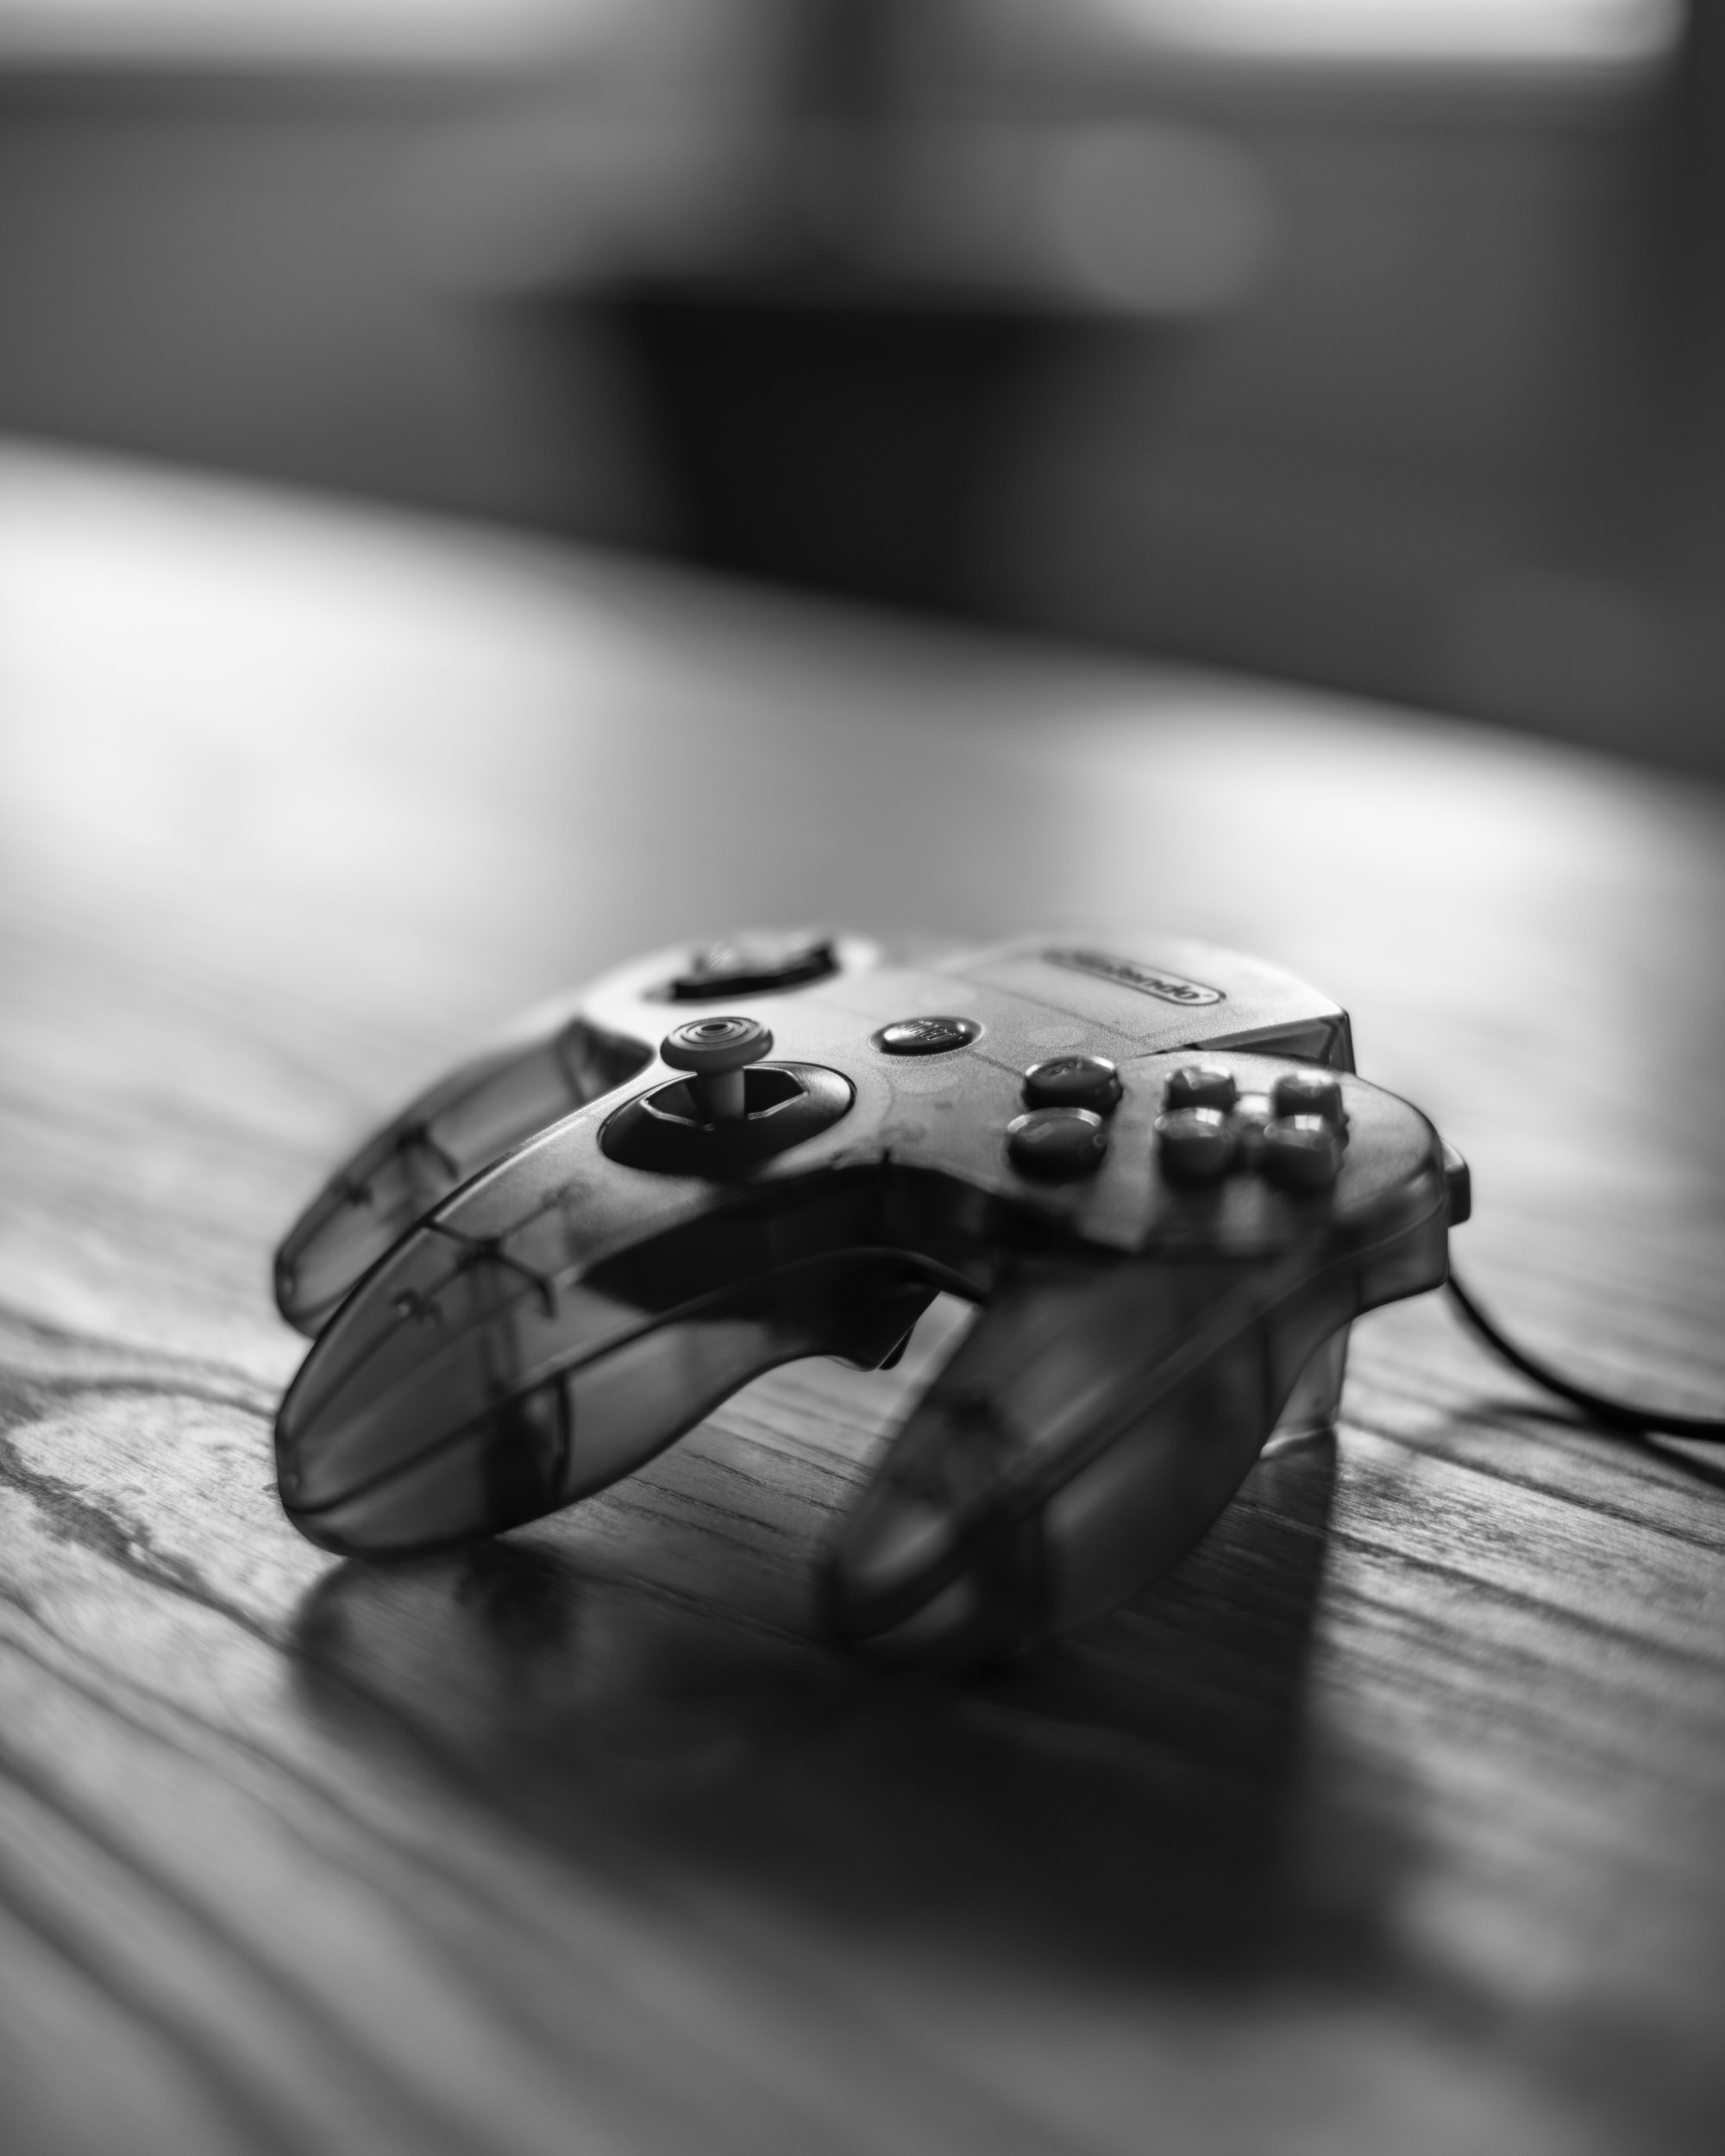 A closeup of a three-pronged, see-through Nintendo 64 controller, in black-and-white.